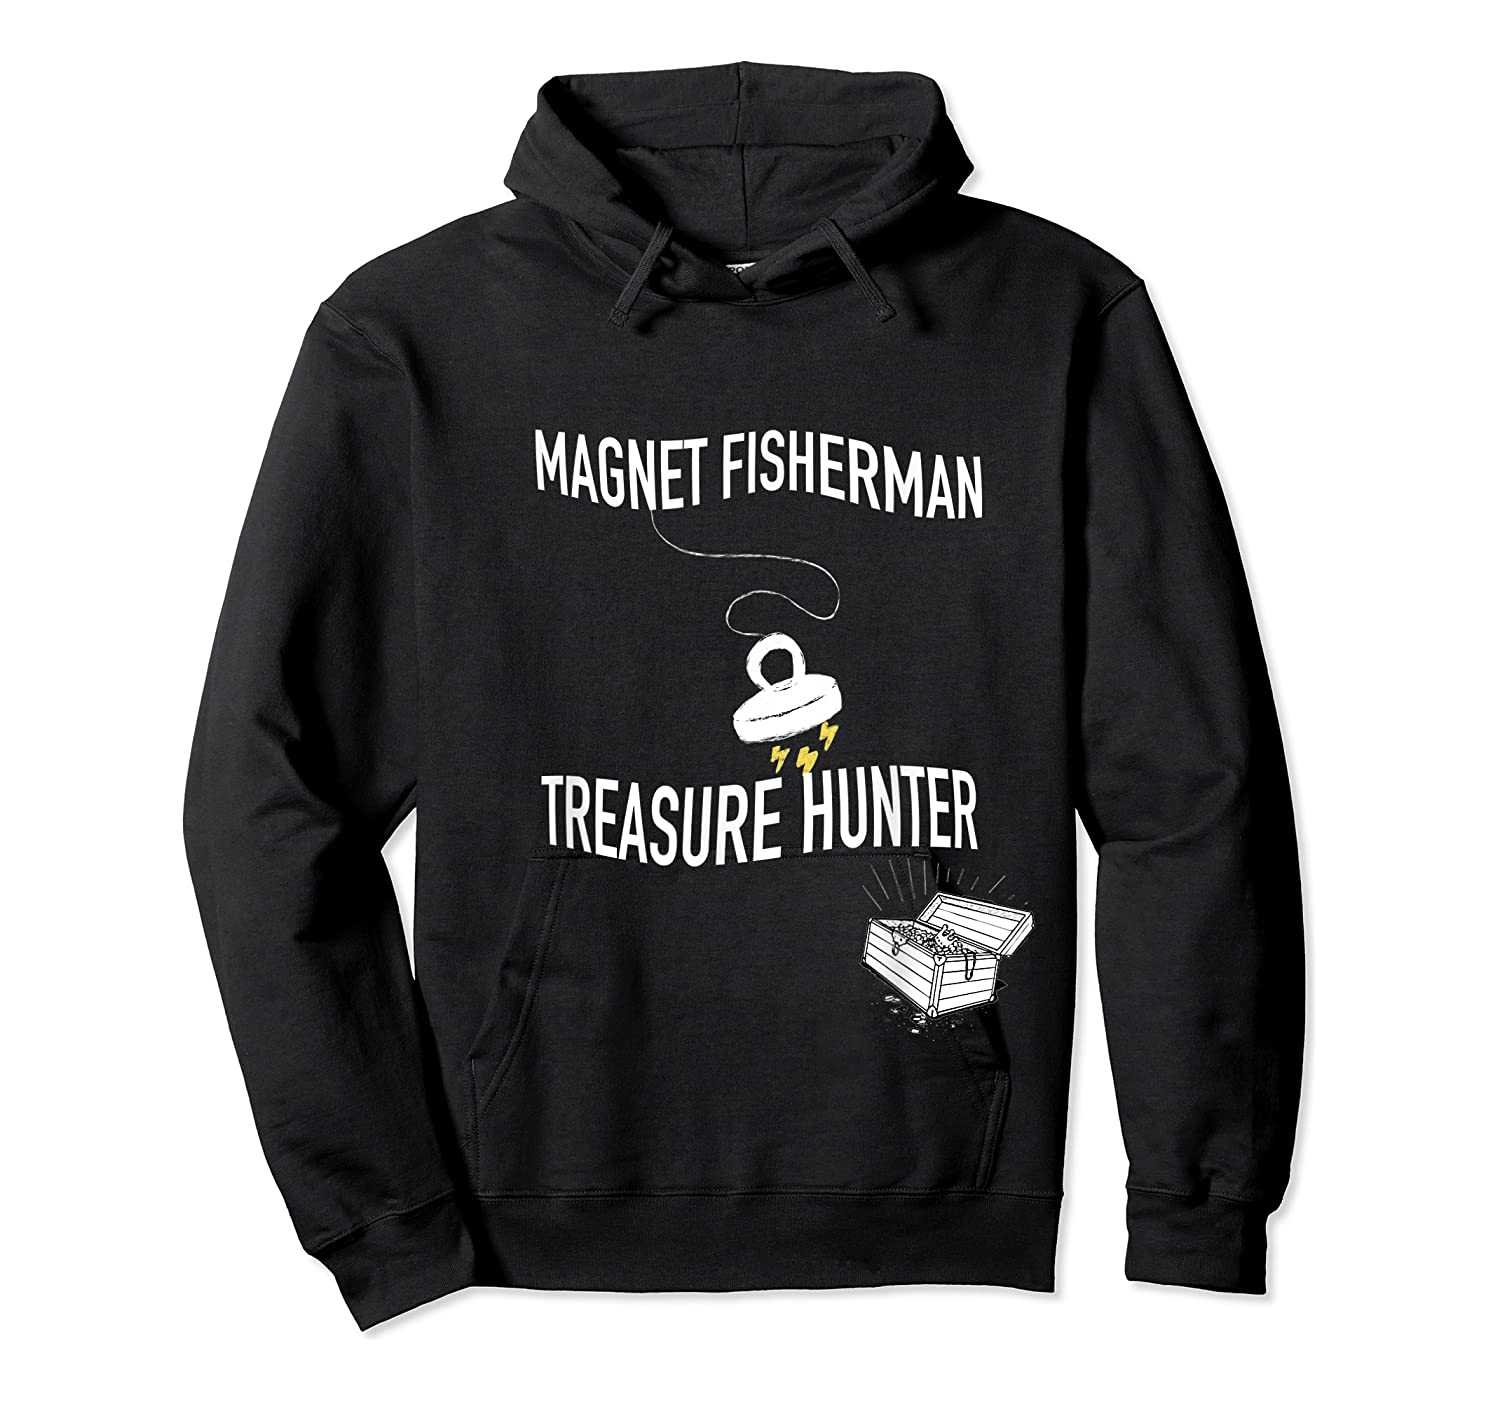 Magnet Fisherman Fishing Treasure Chest Hunting Wave Gift T-shirt Unisex Pullover Hoodie